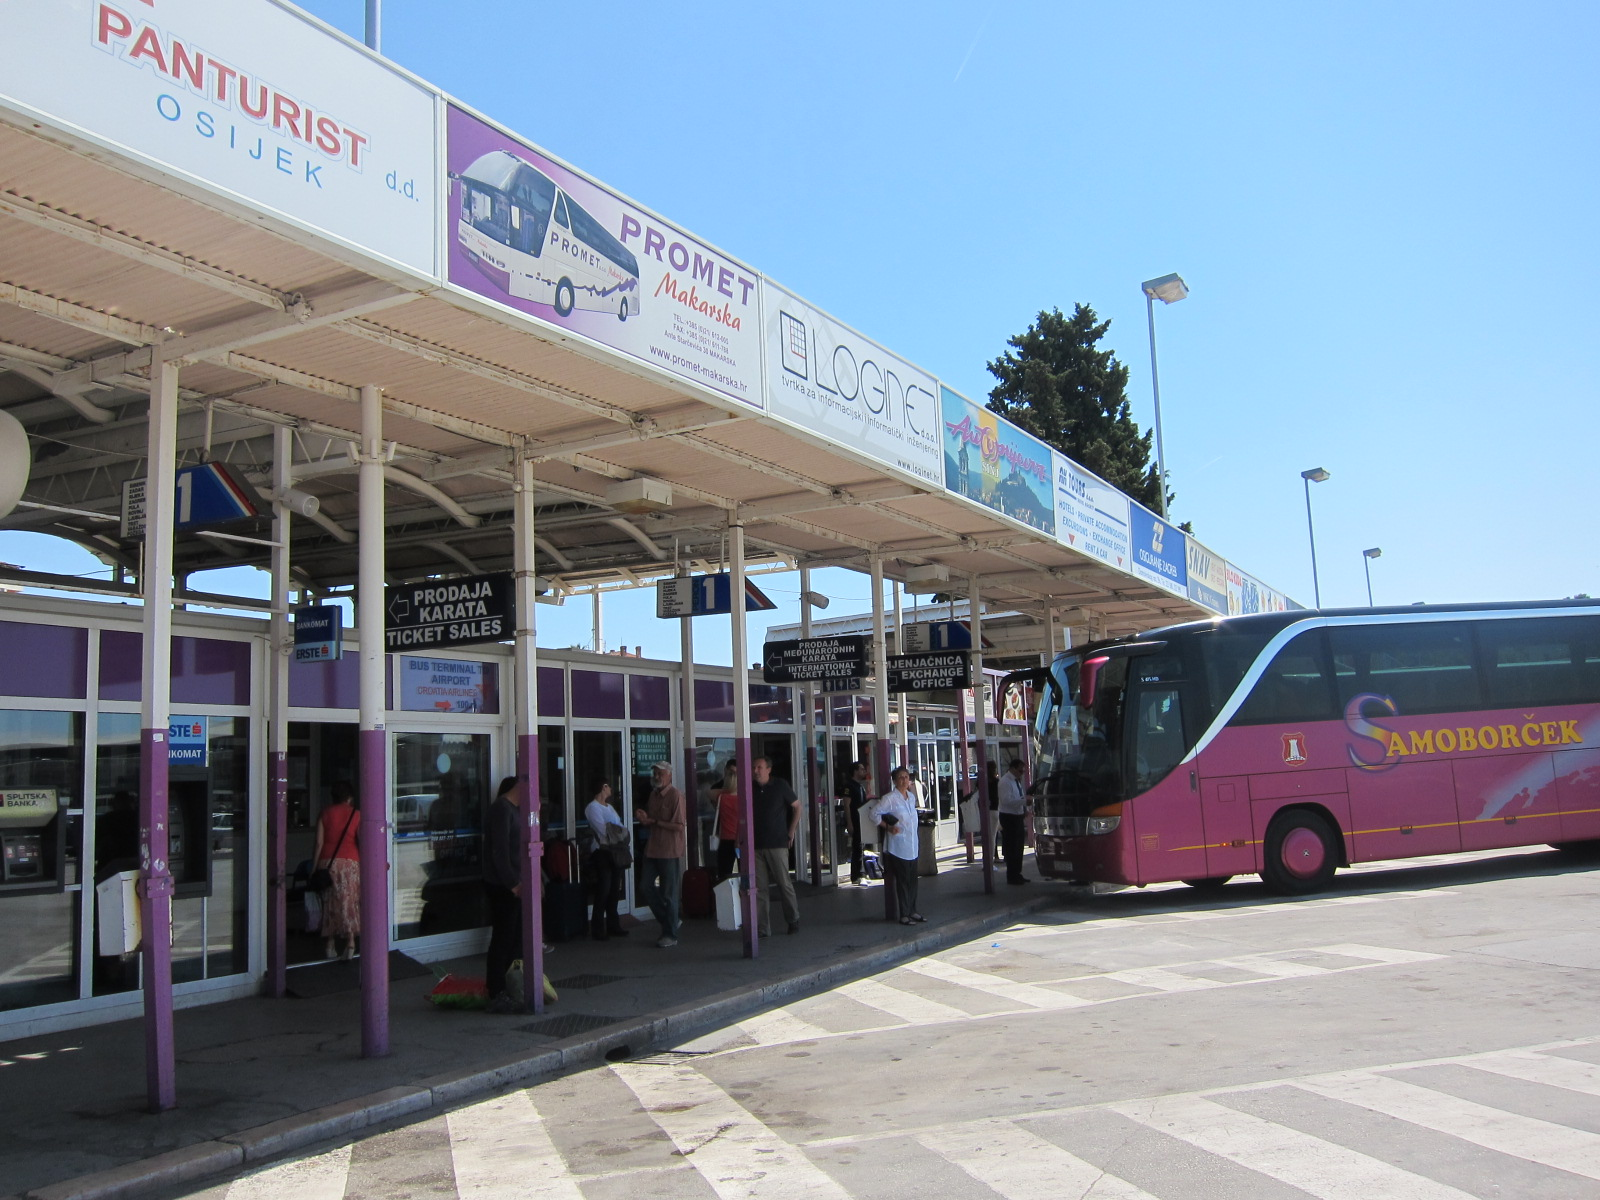 Bus Travel in Croatia